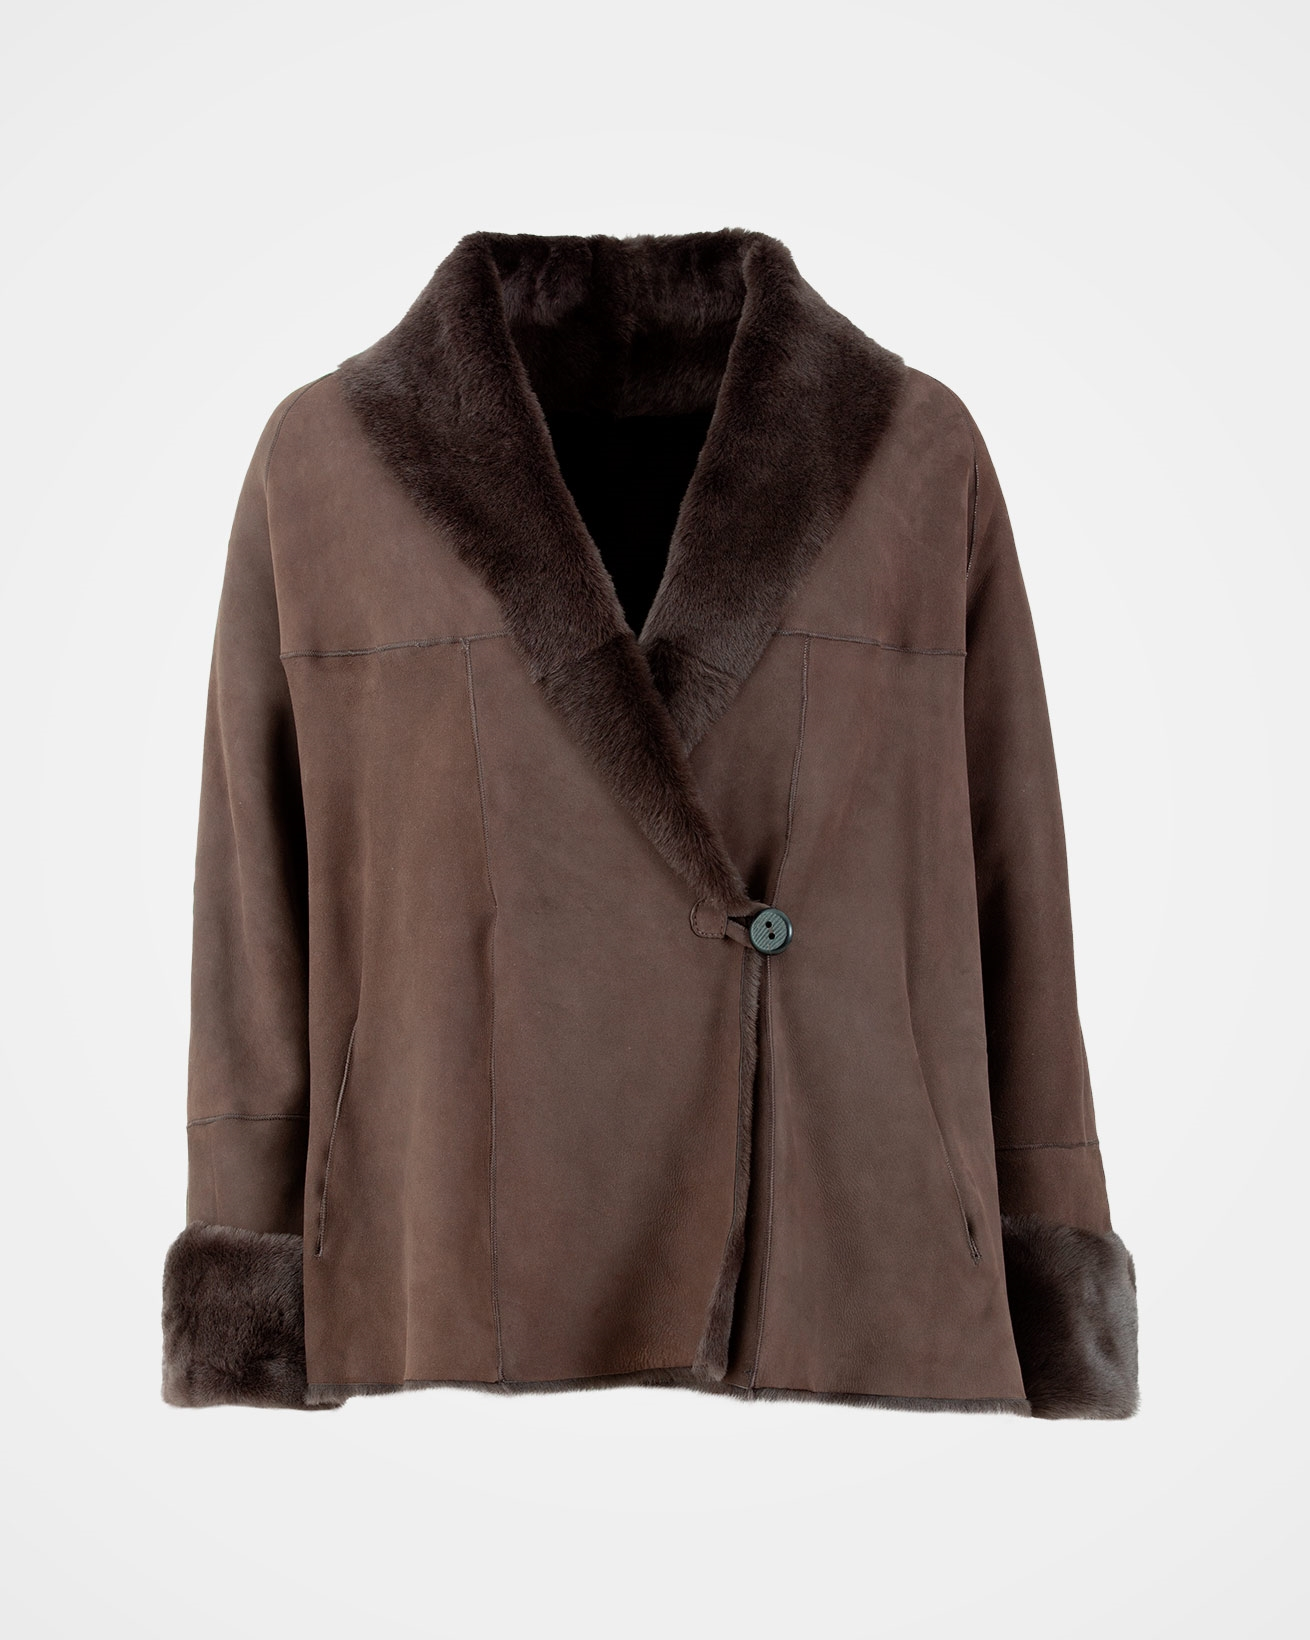 7120_shawl-collar-sheepskin-coat_dark-chocolate_front.jpg